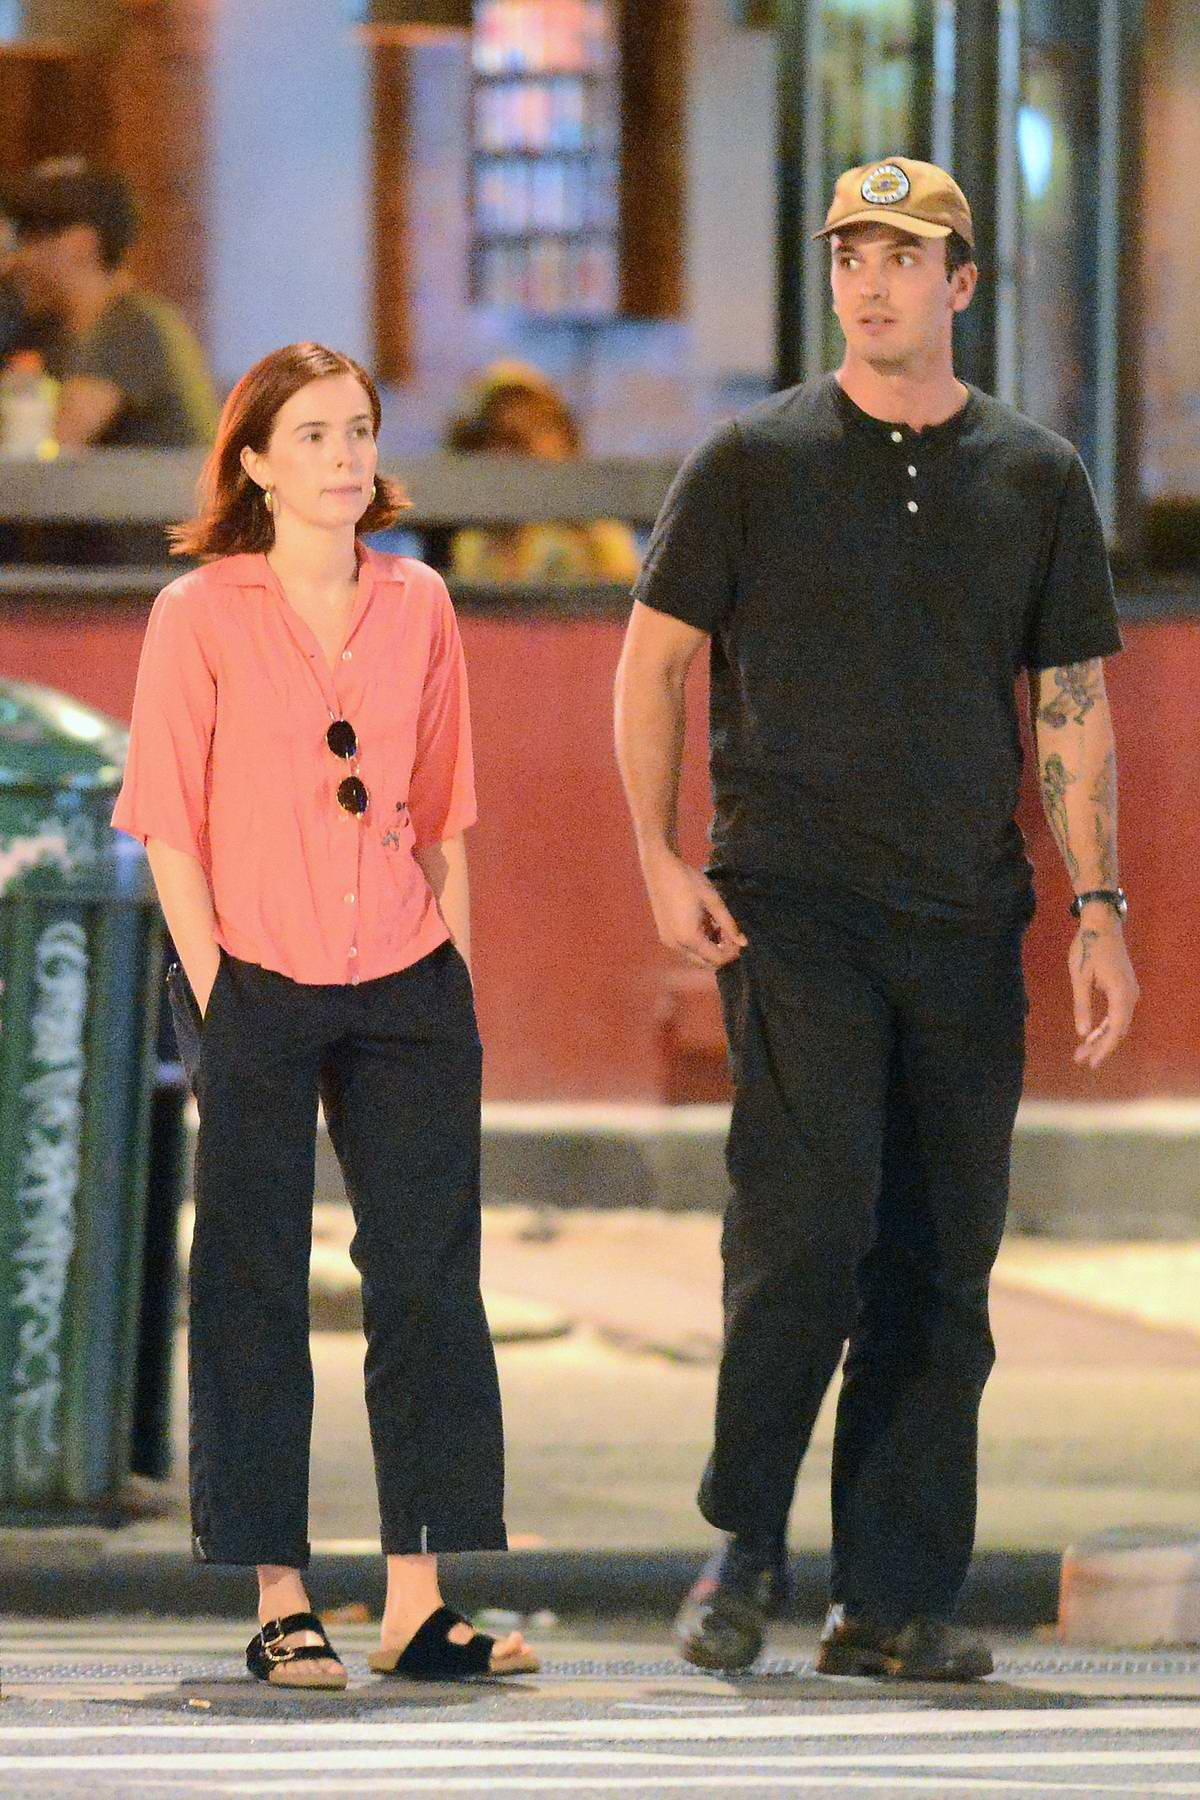 Zoey Deutch and Dylan Hayes are spotted heading to dinner in SoHo, New York City